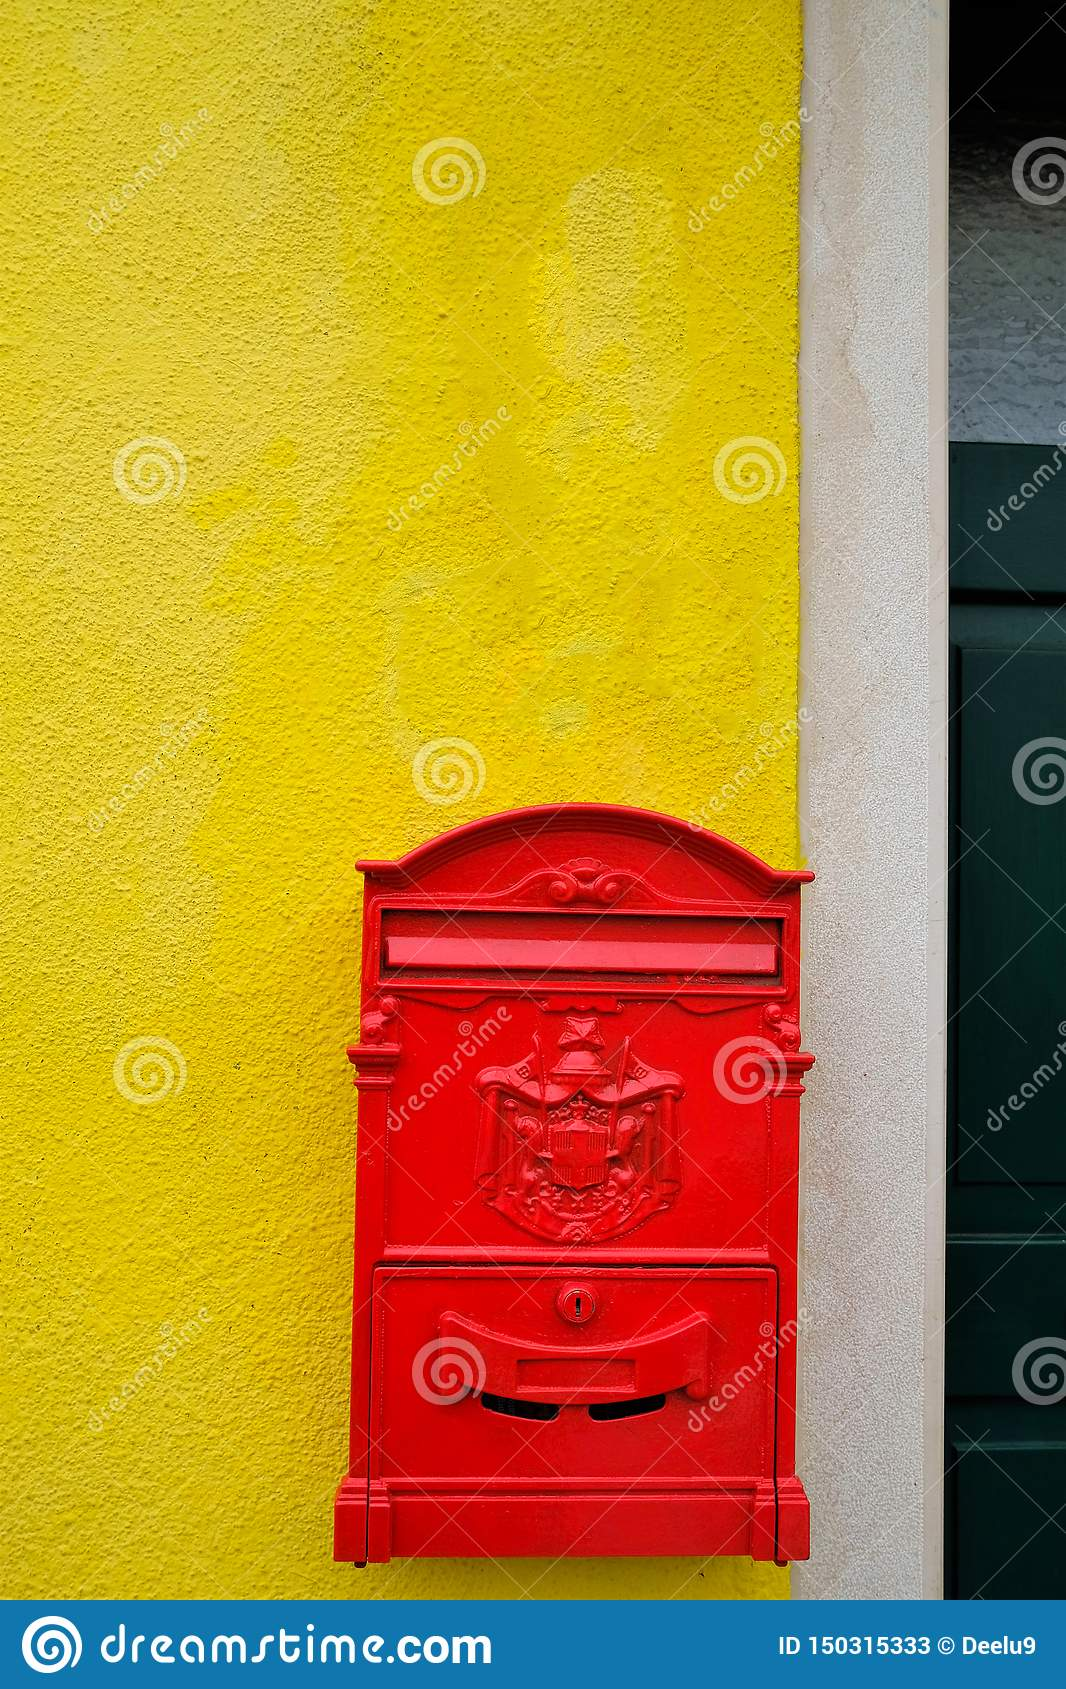 Red letter box hanging on a yellow wall